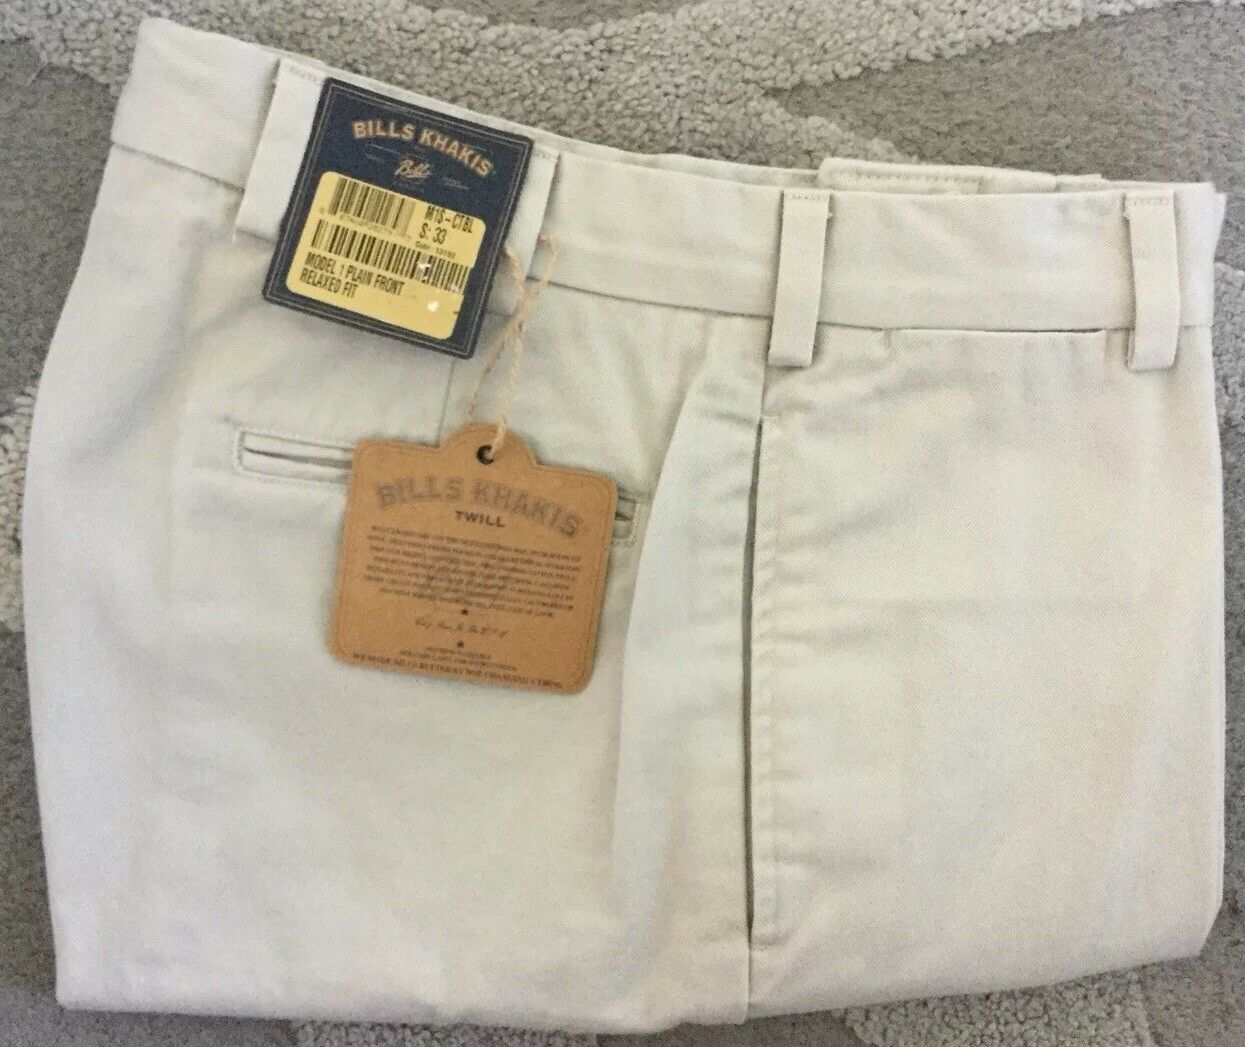 NWT-Bills Khakis Parker M1S-CTBL Relaxed Shorts-CEMENT SZ 33-